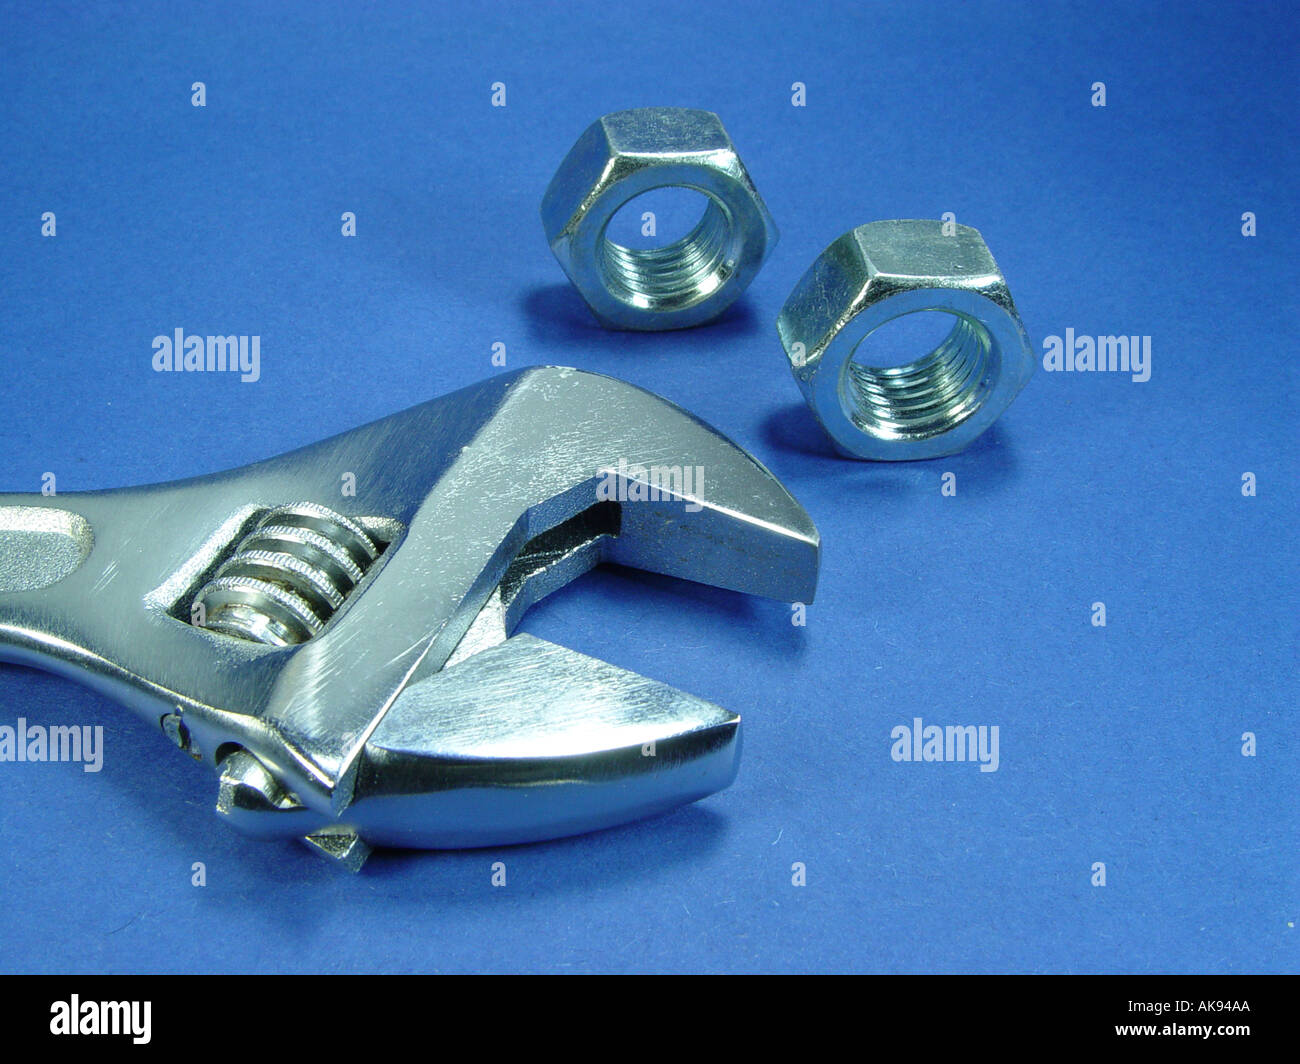 Tool as symbol for work stock photo royalty free image 1283241 tool as symbol for work buycottarizona